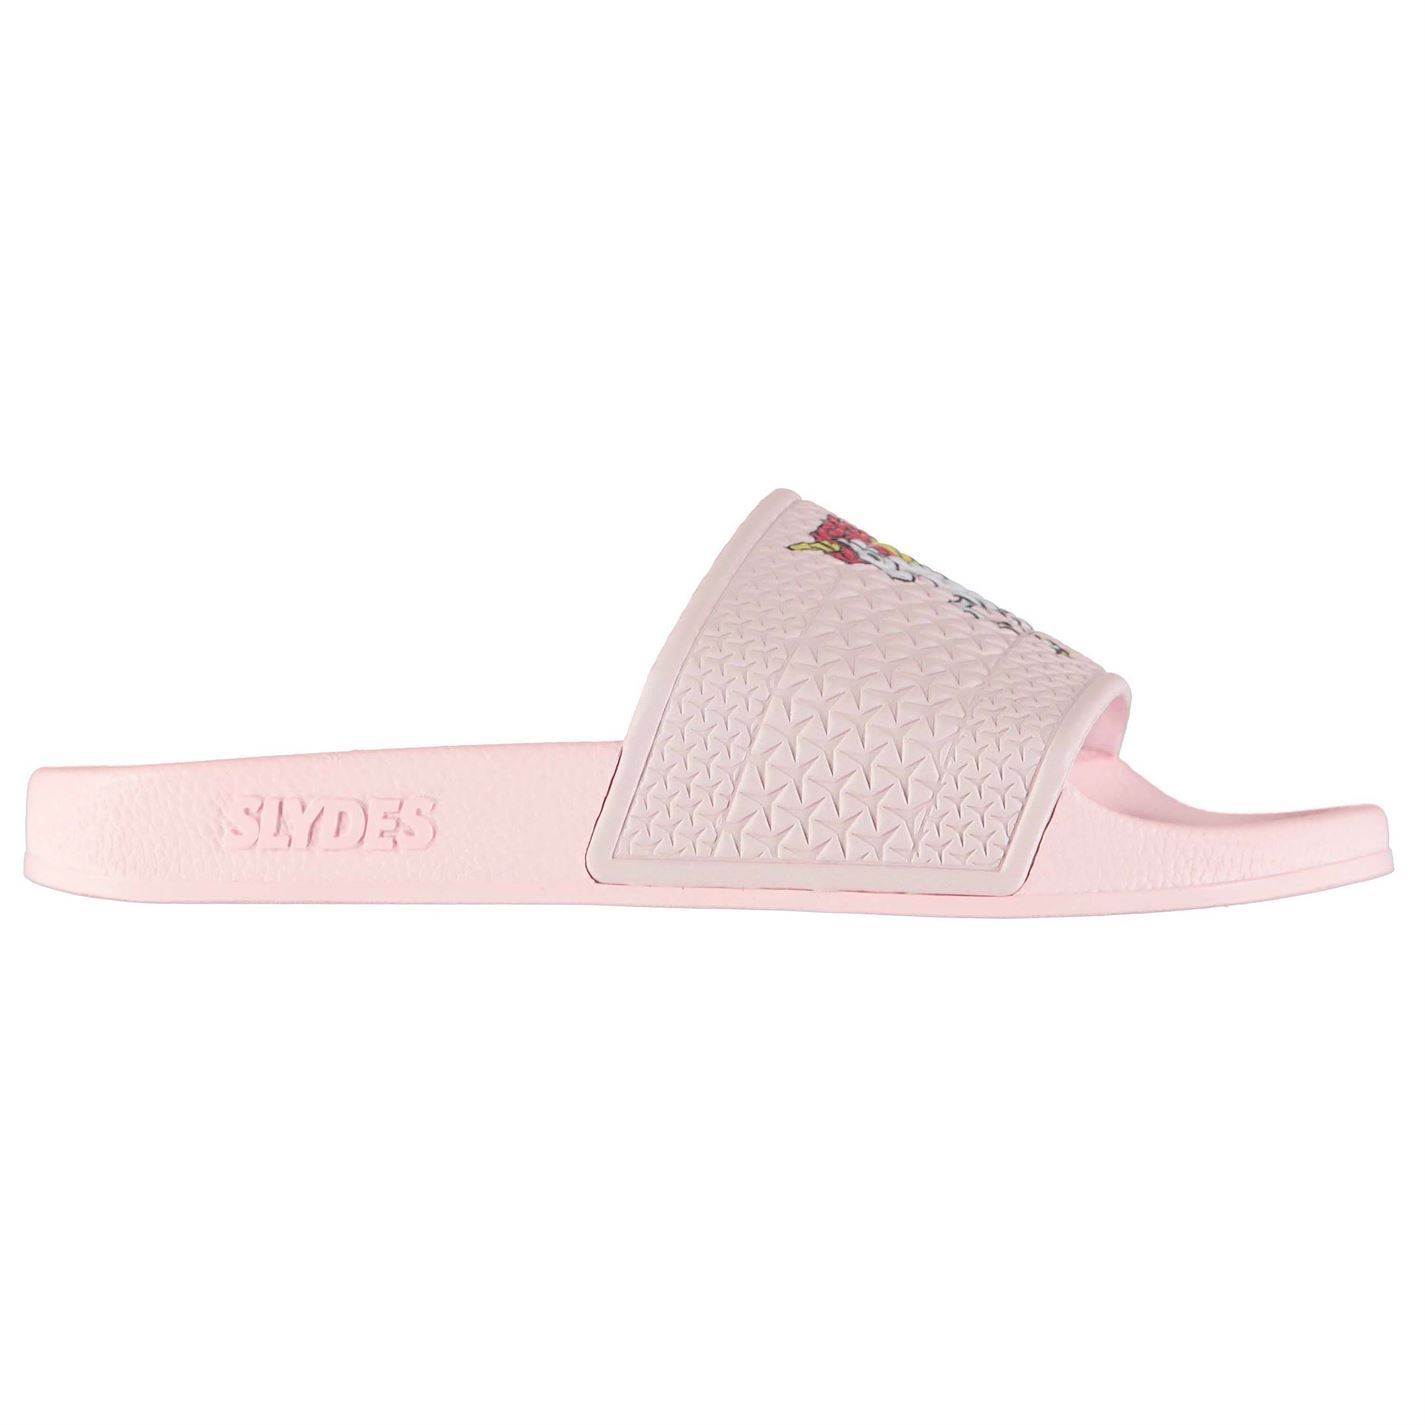 Slydes-Womens-Pina-Unicorn-Sliders-Shoes-Slip-On-Water-Pool-Beach-Summer